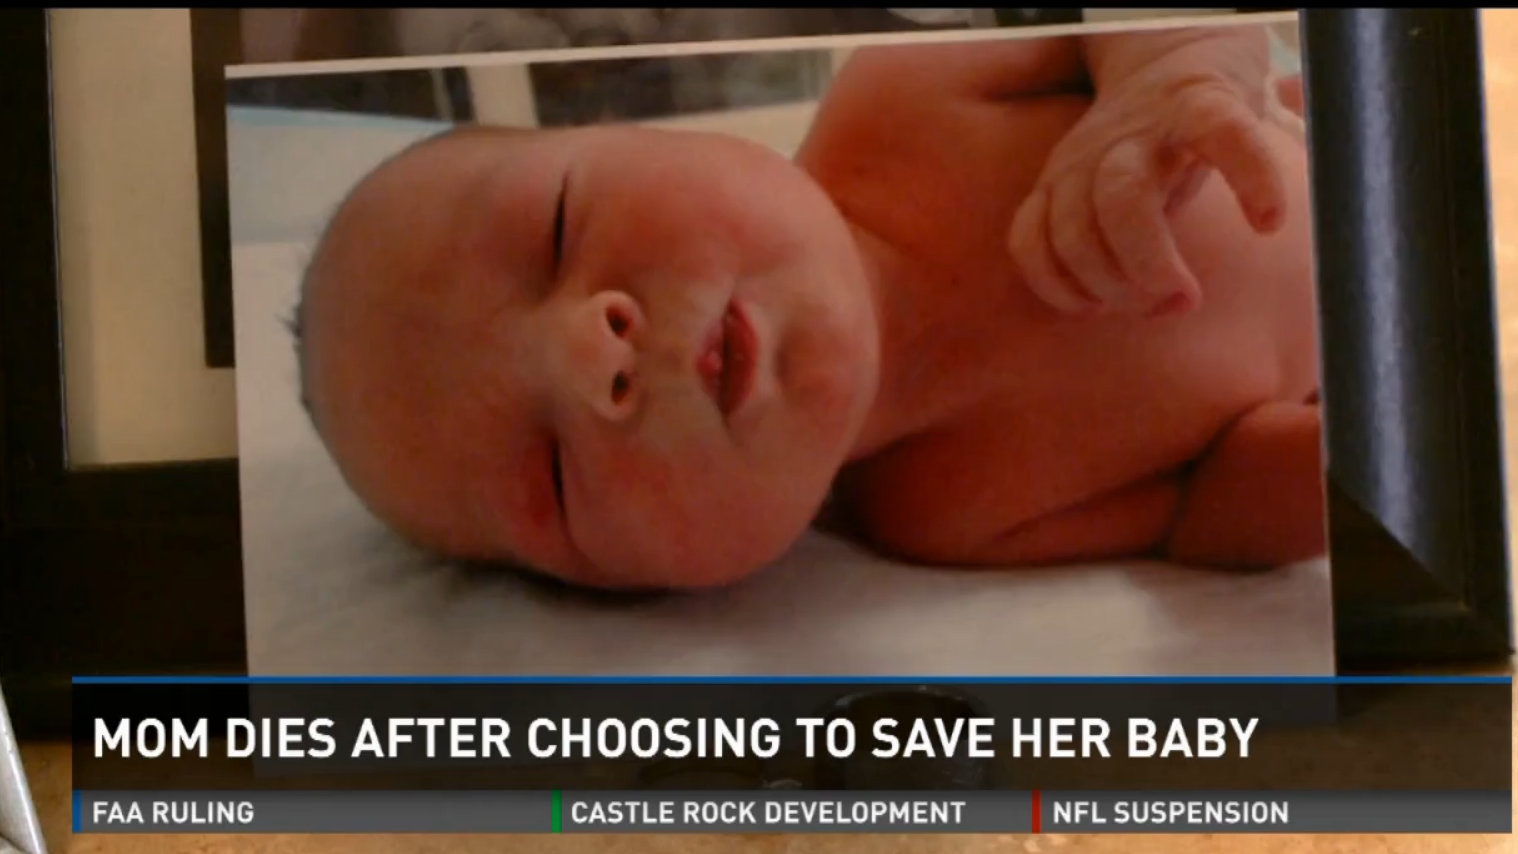 Mom dies after choosing to save baby